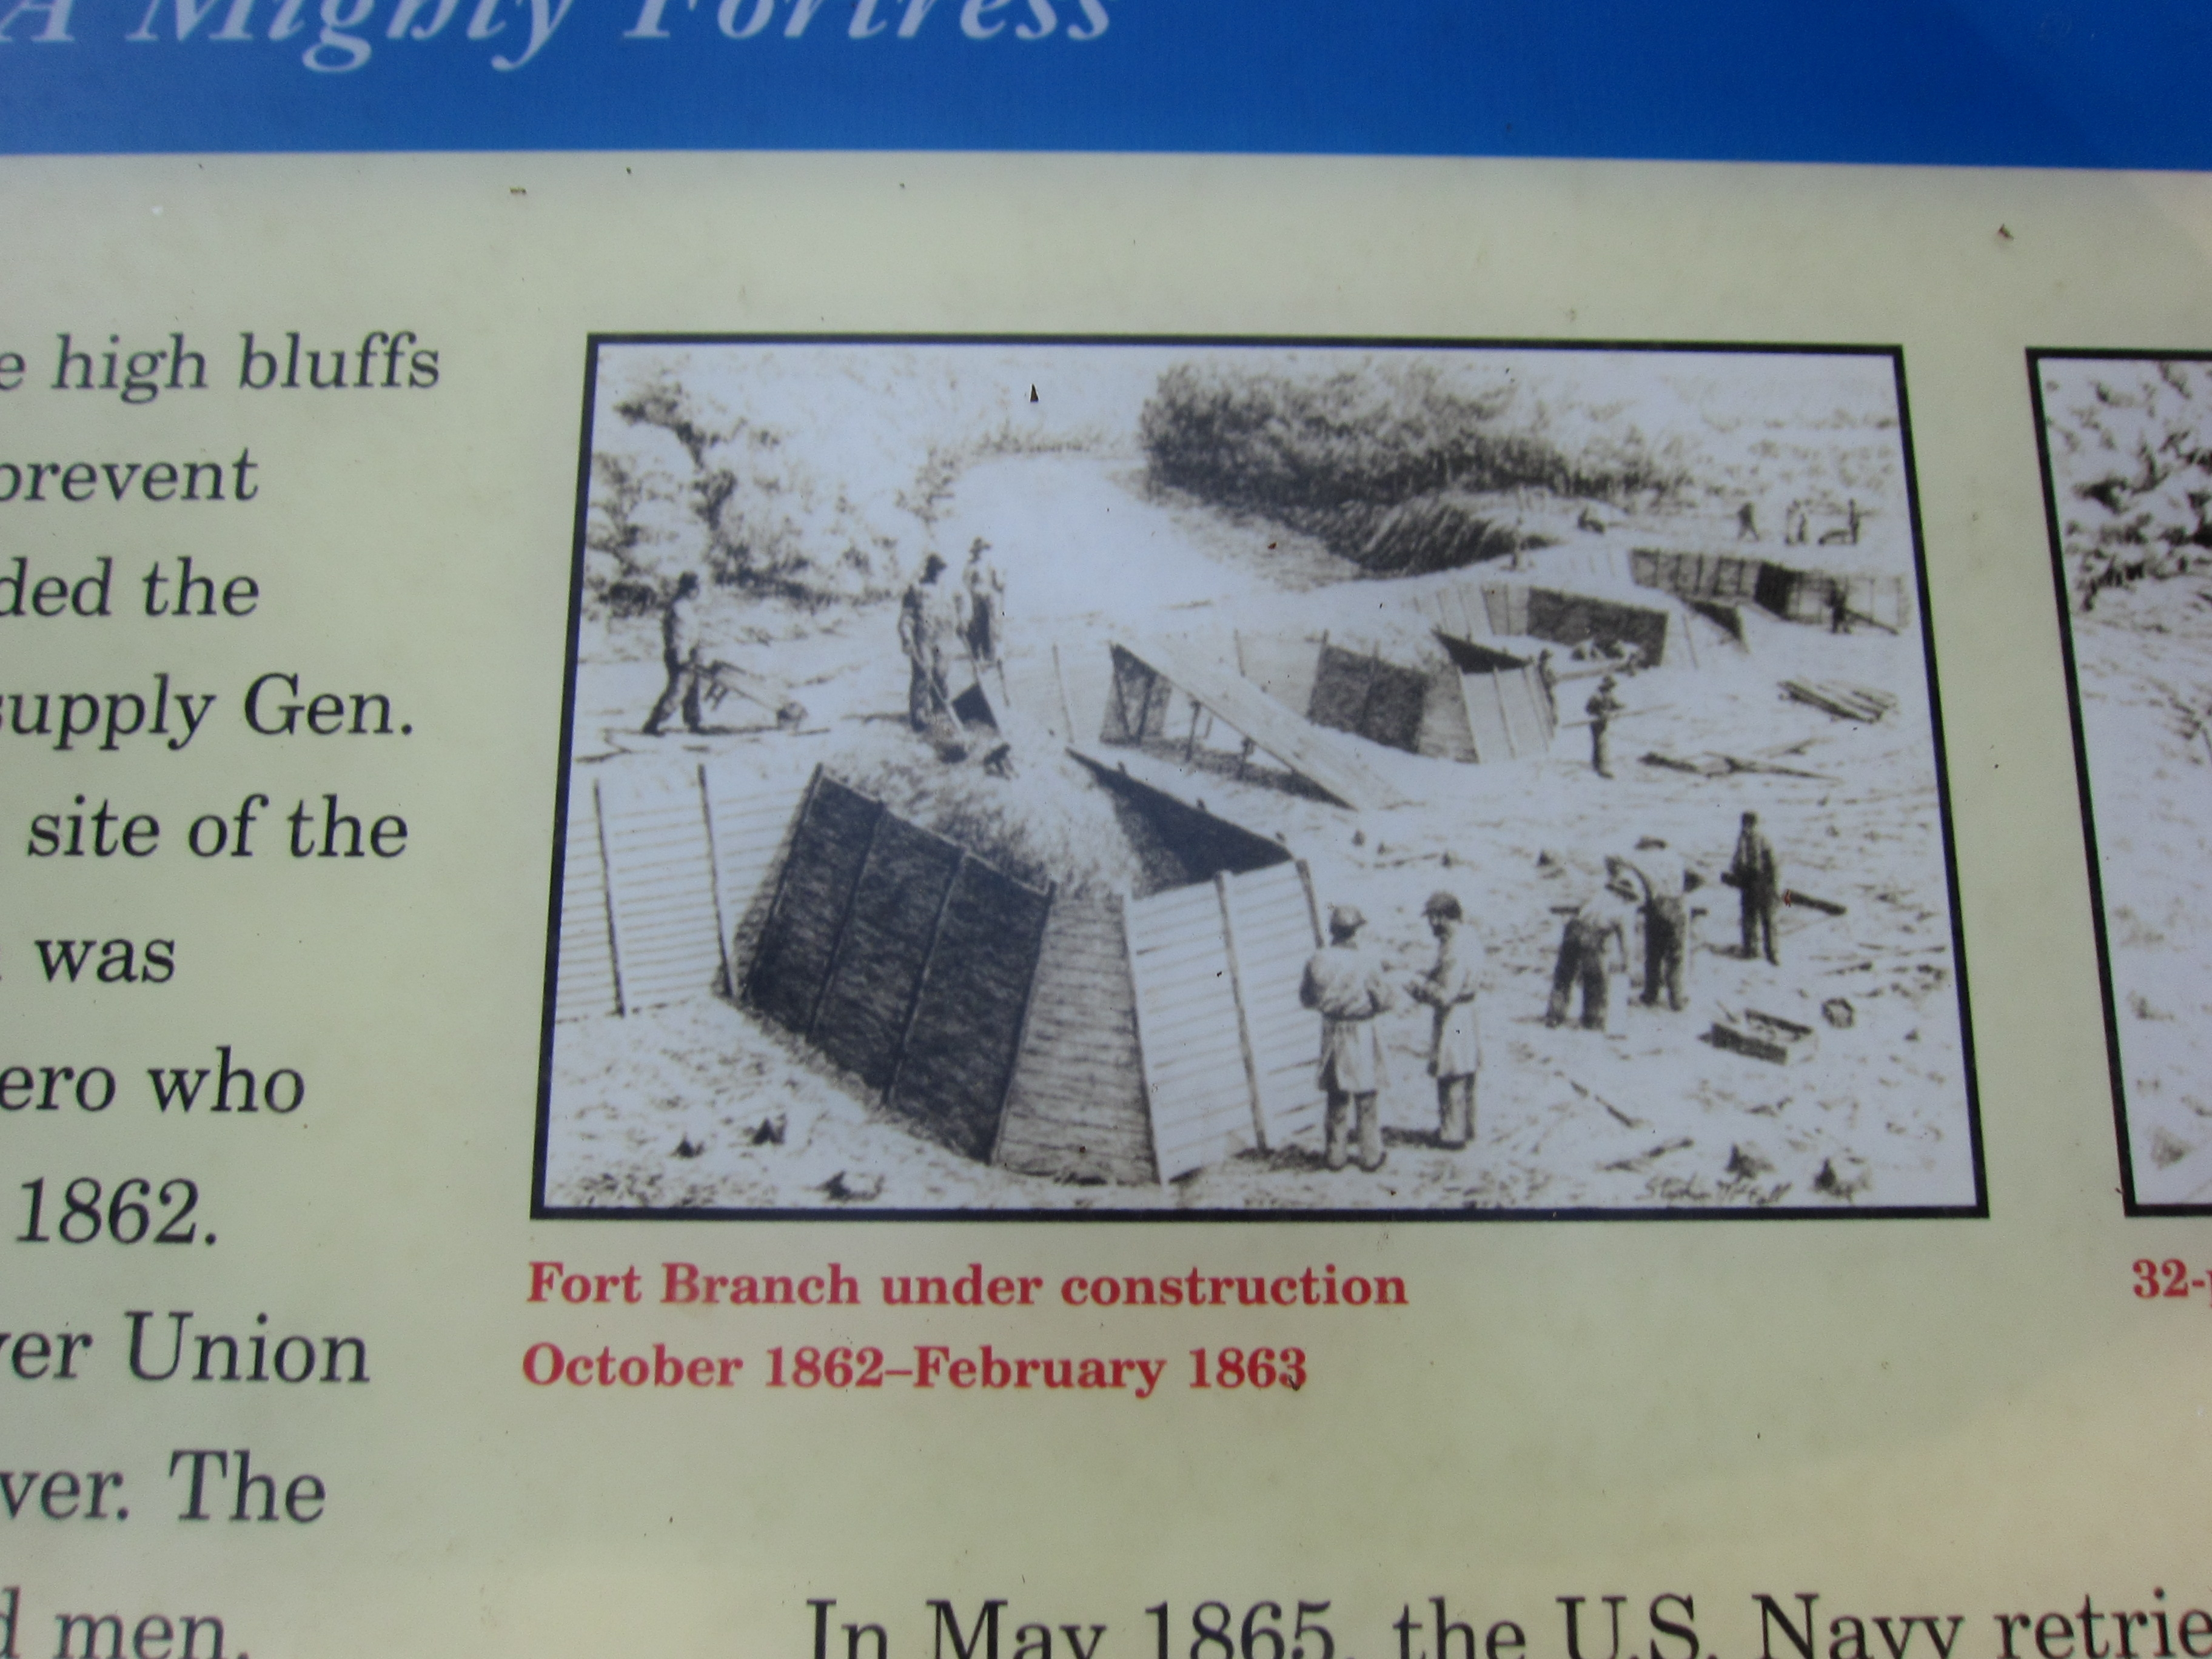 Fort Branch under construction, October 1862-February 1863